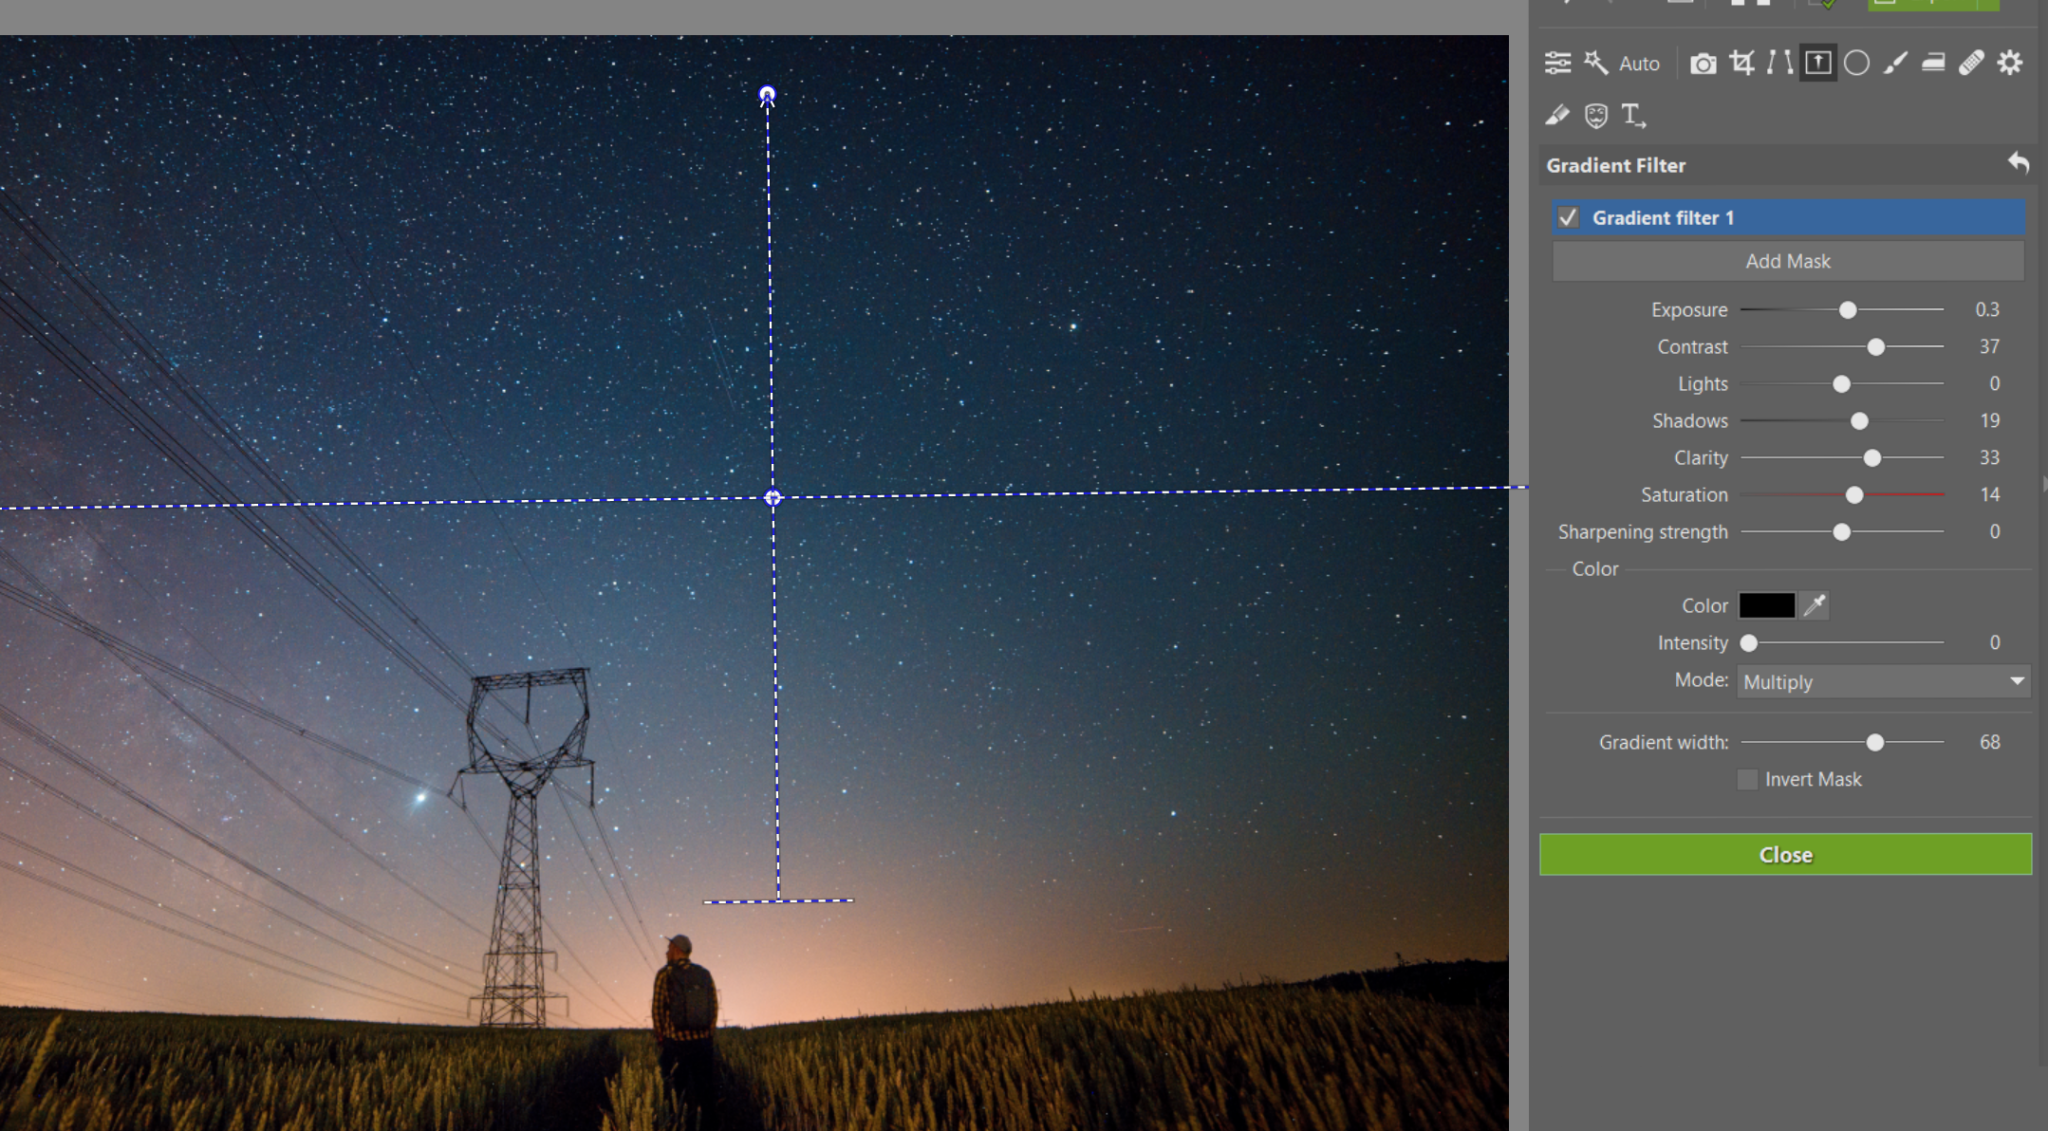 Night-sky Photos: 7 Edits (+1 More) That Will Definitely Spice Them Up